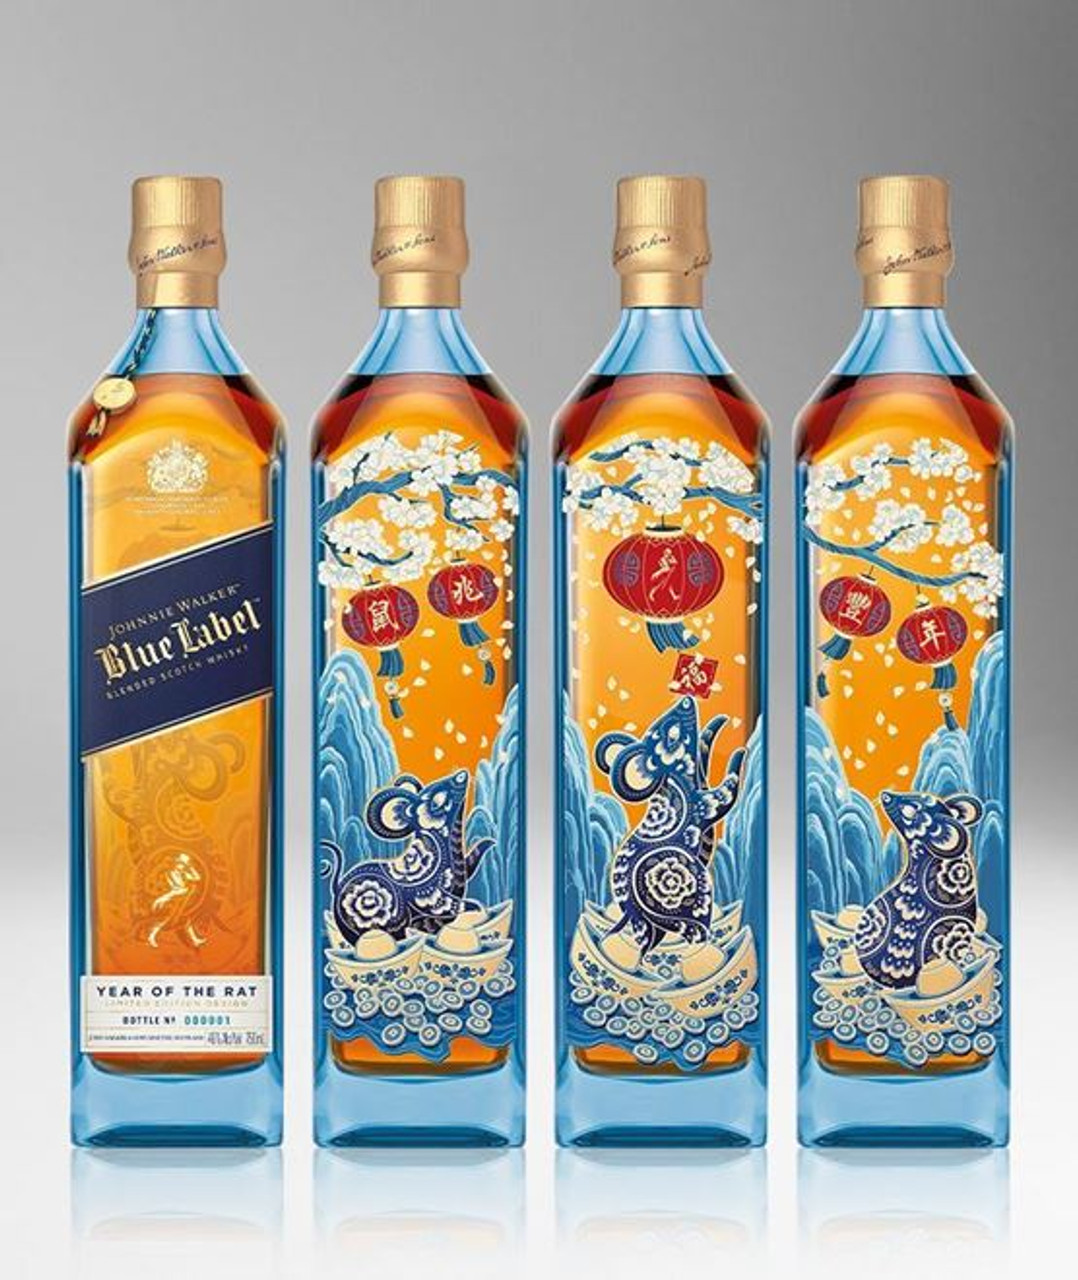 Johnnie Walker Blue Label Year of the Rat Limited Edition 750ml